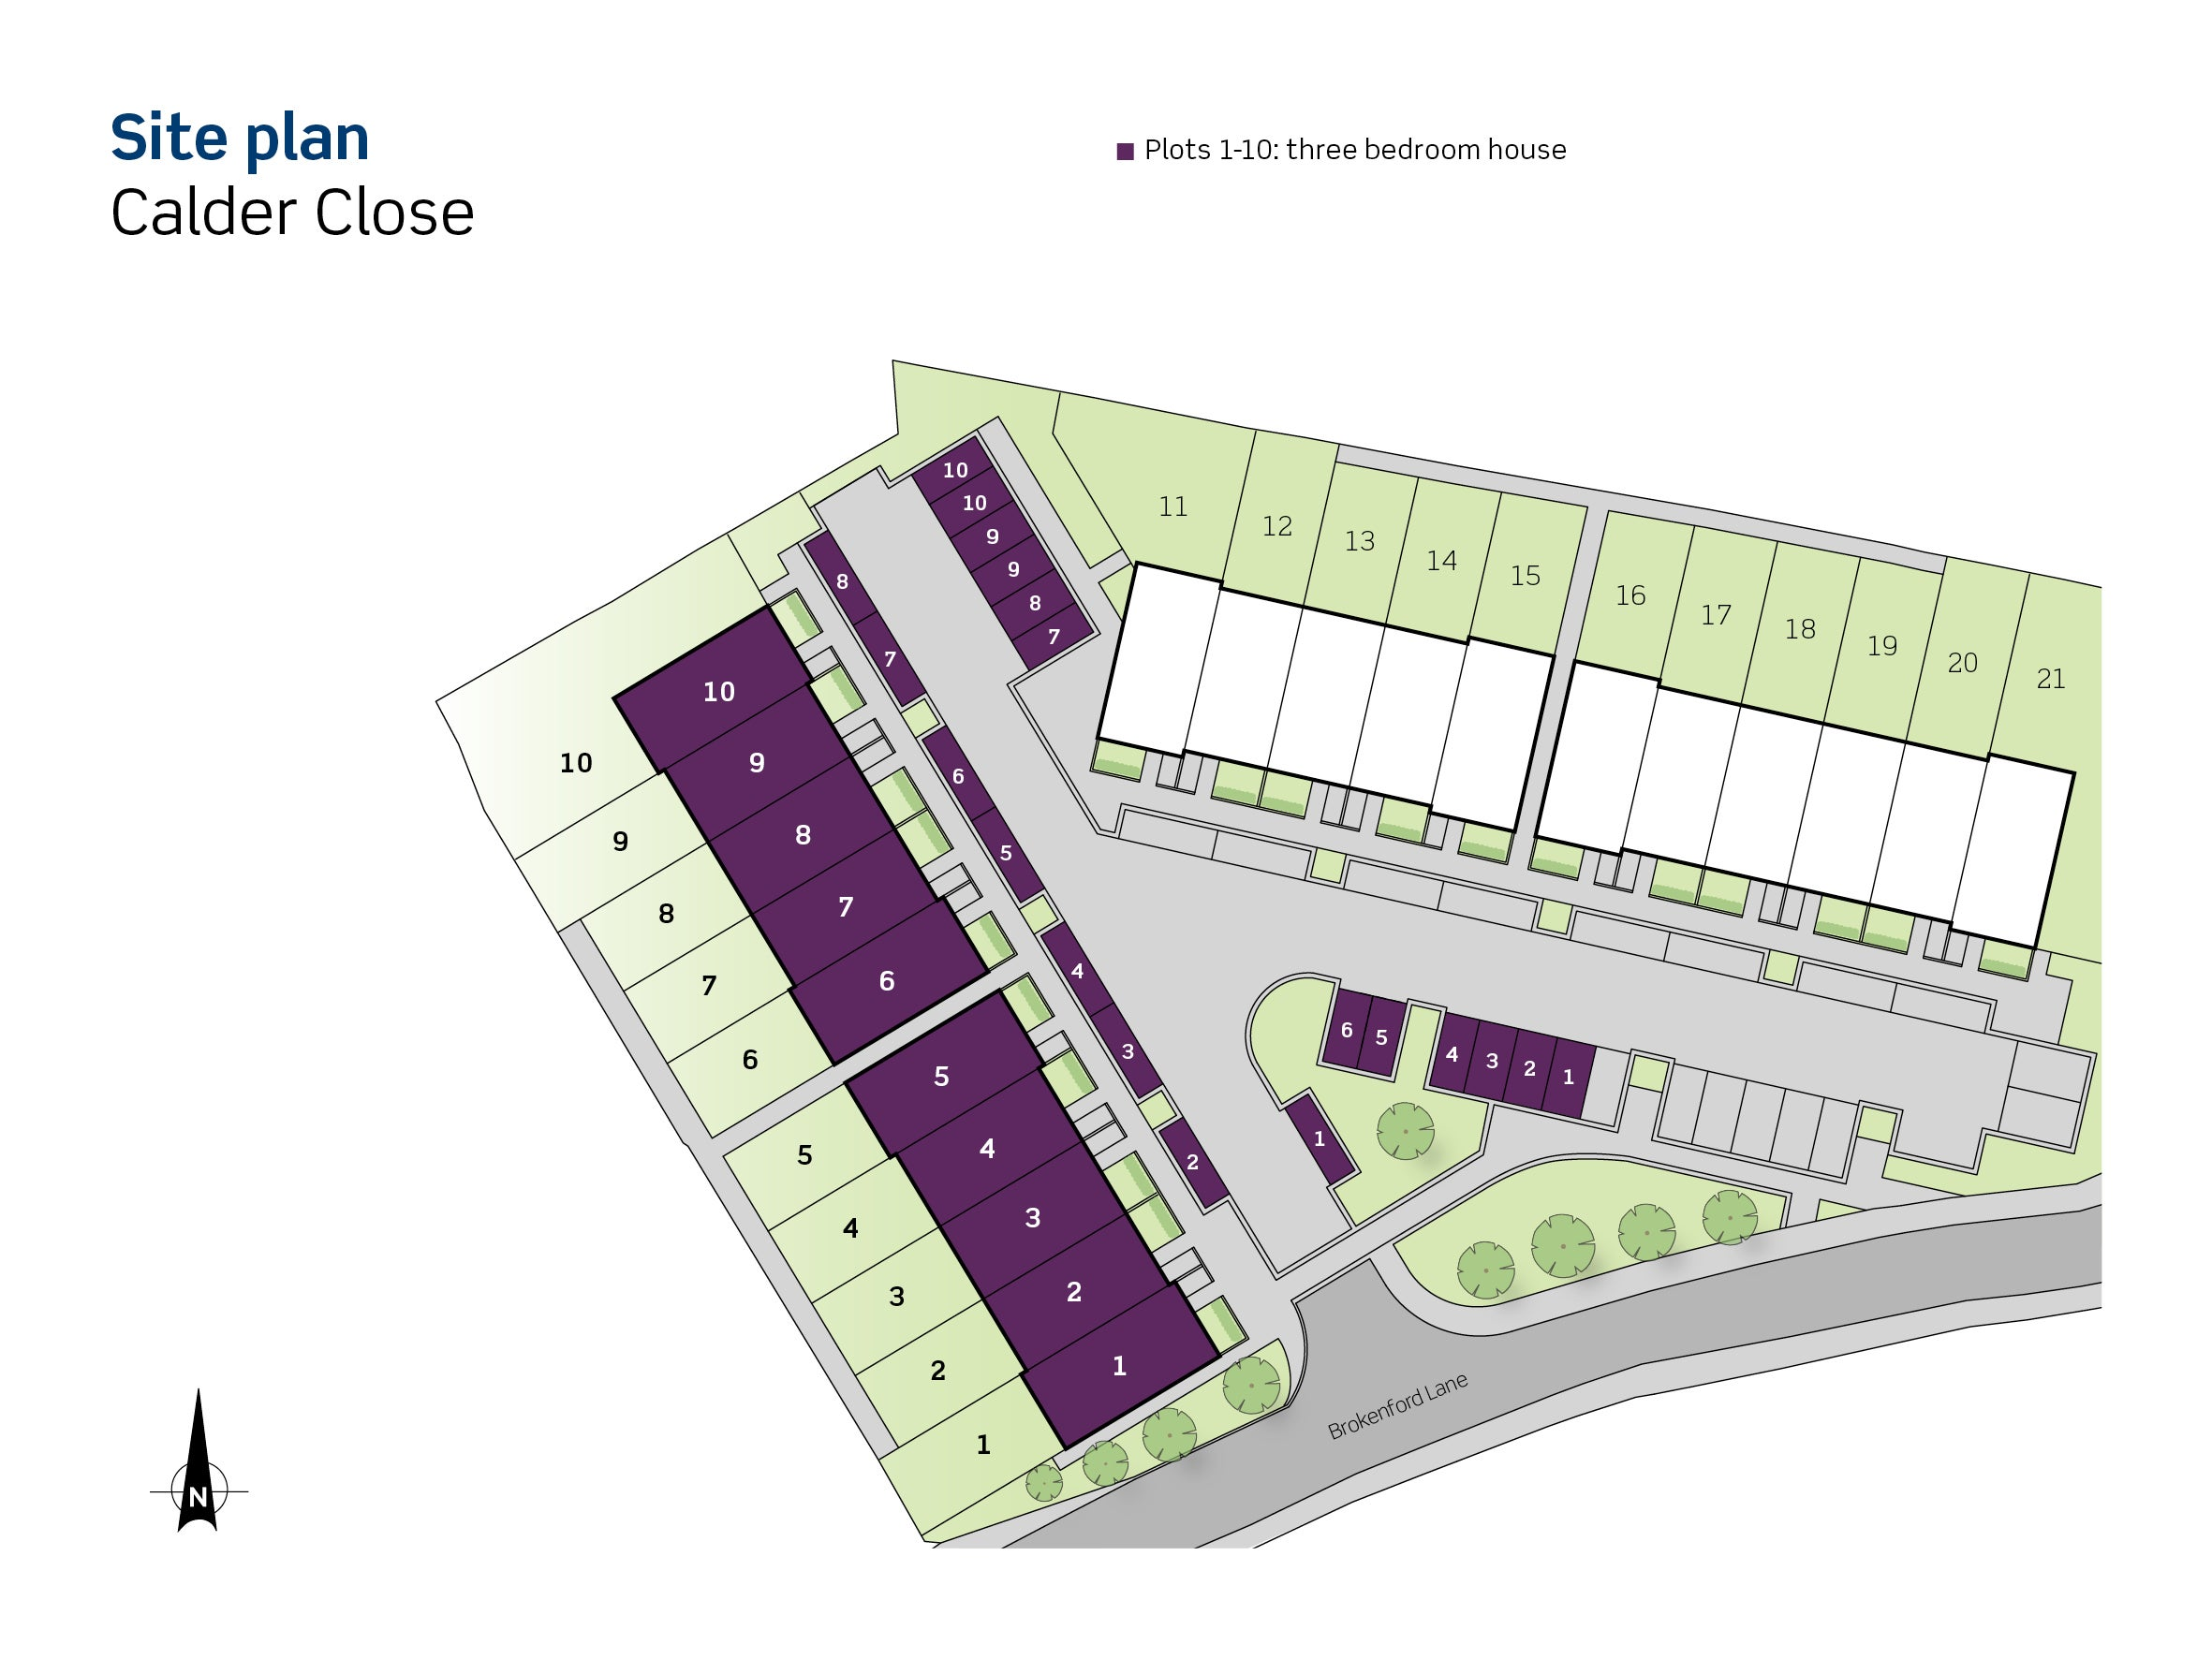 Drawing of Calder Close site plan